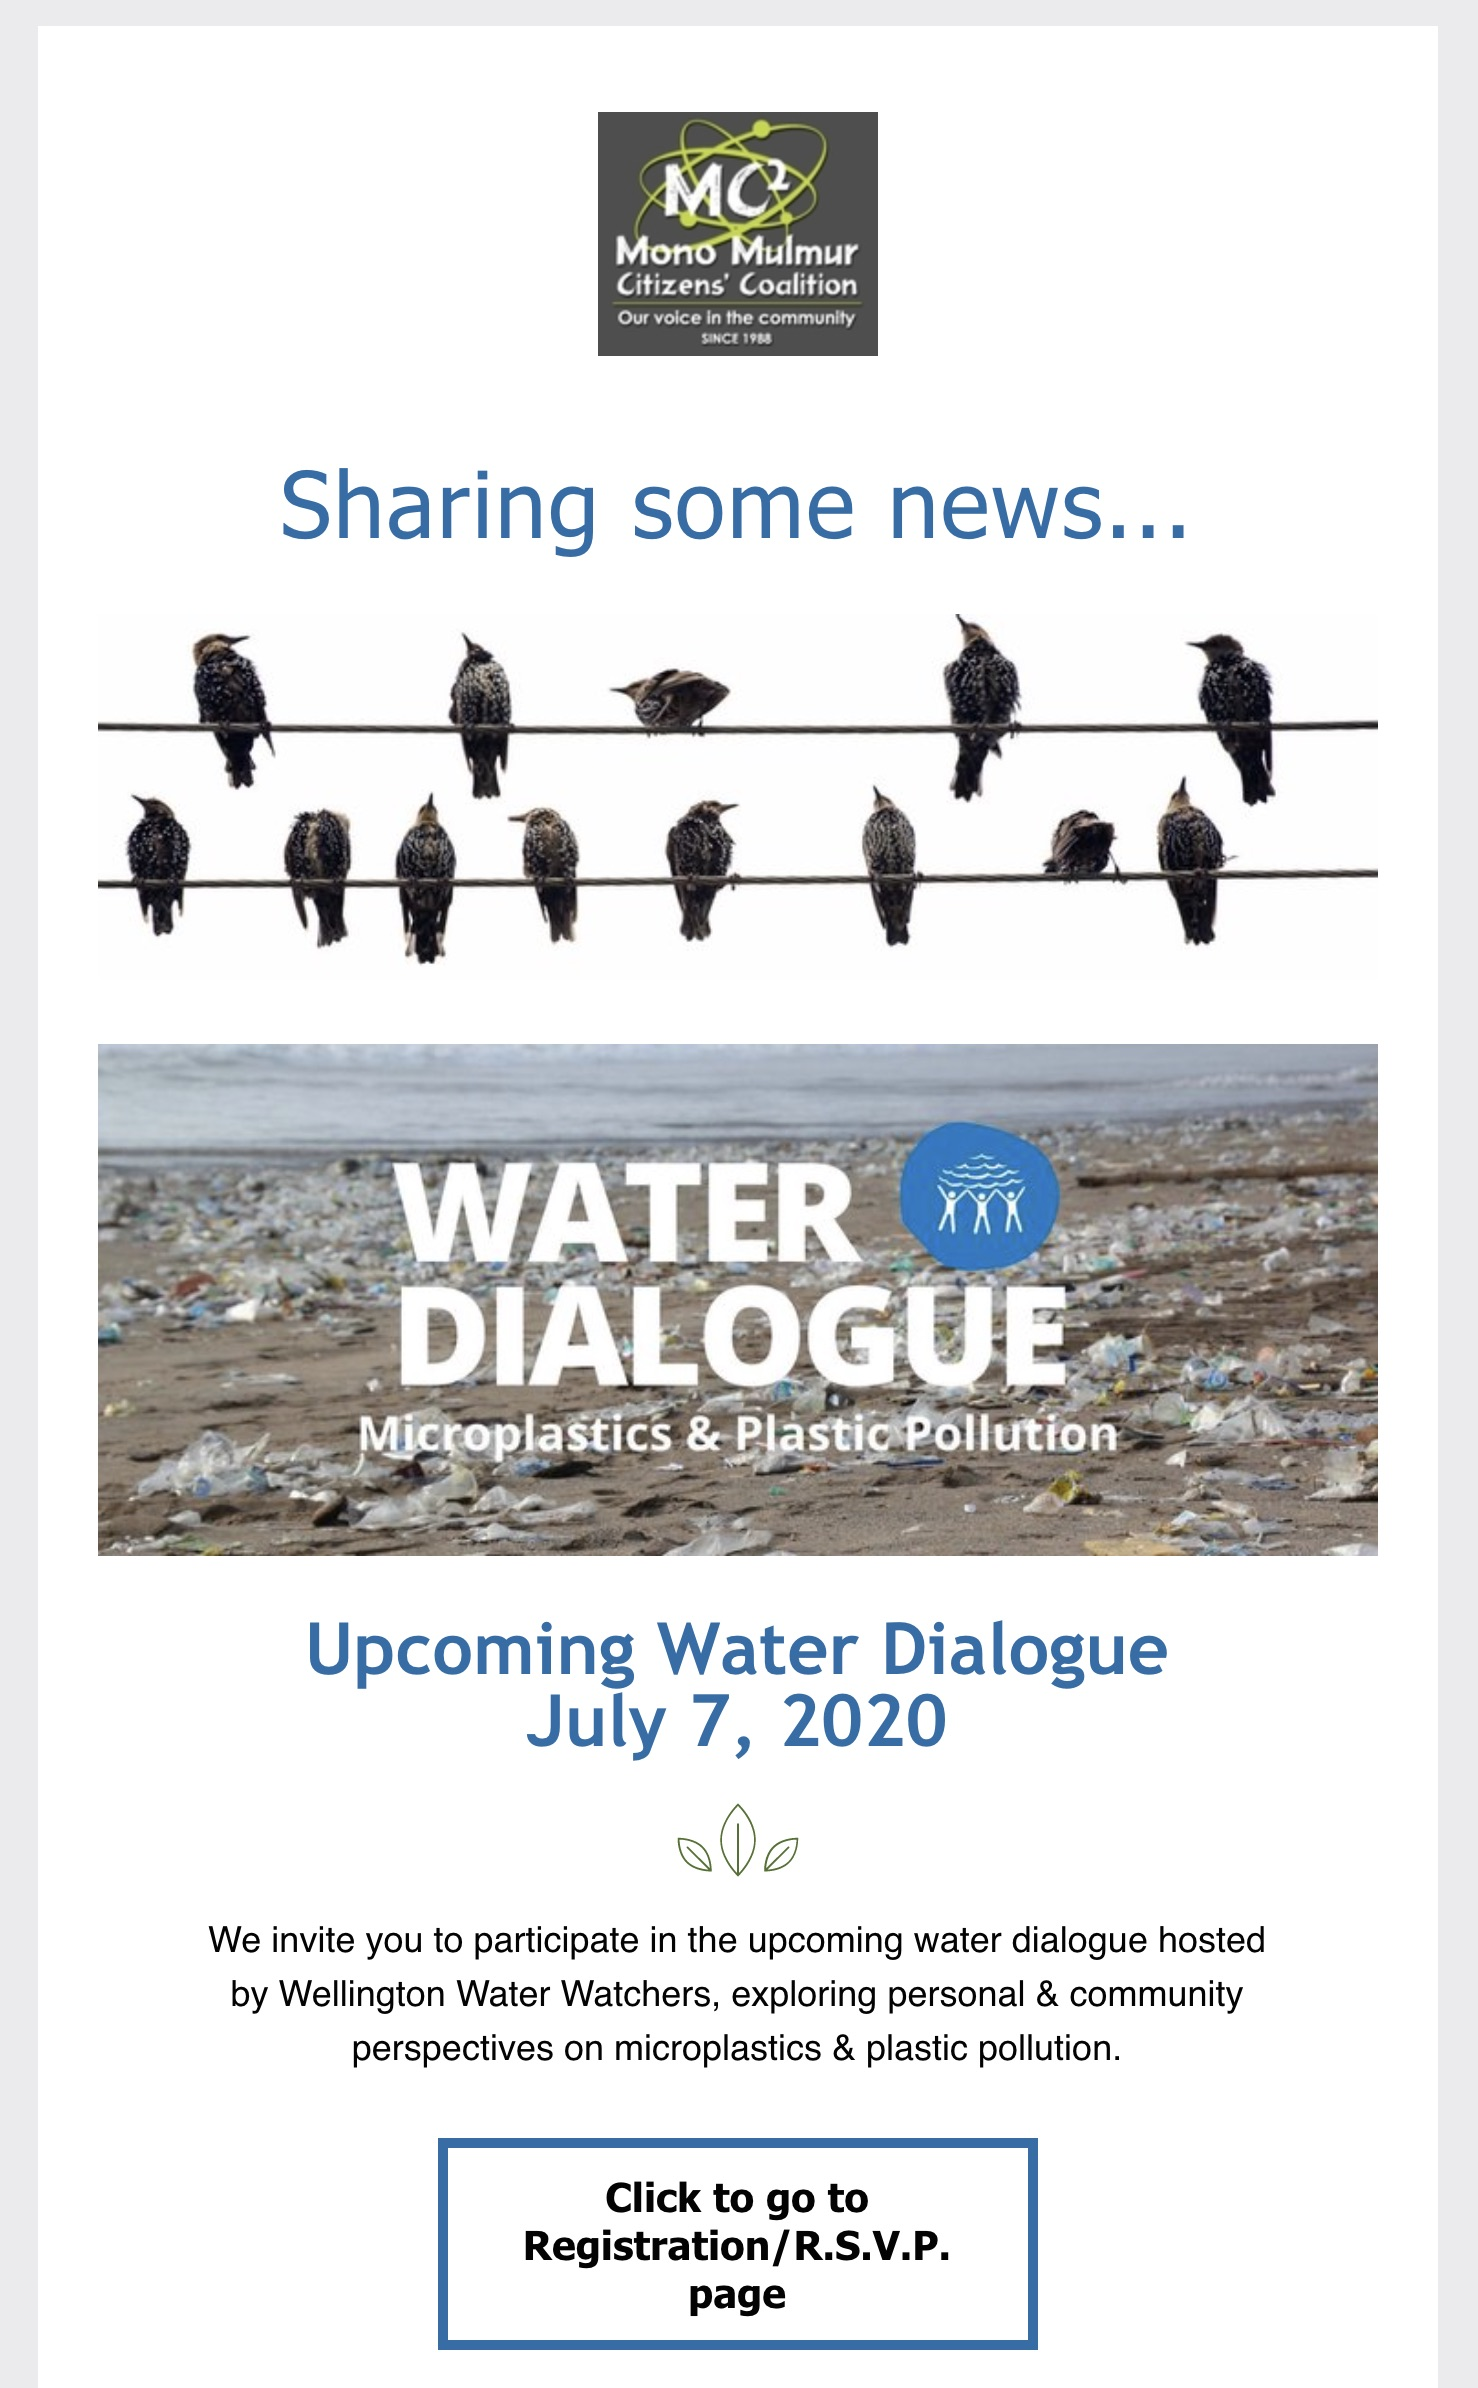 Water Dialogue06:26